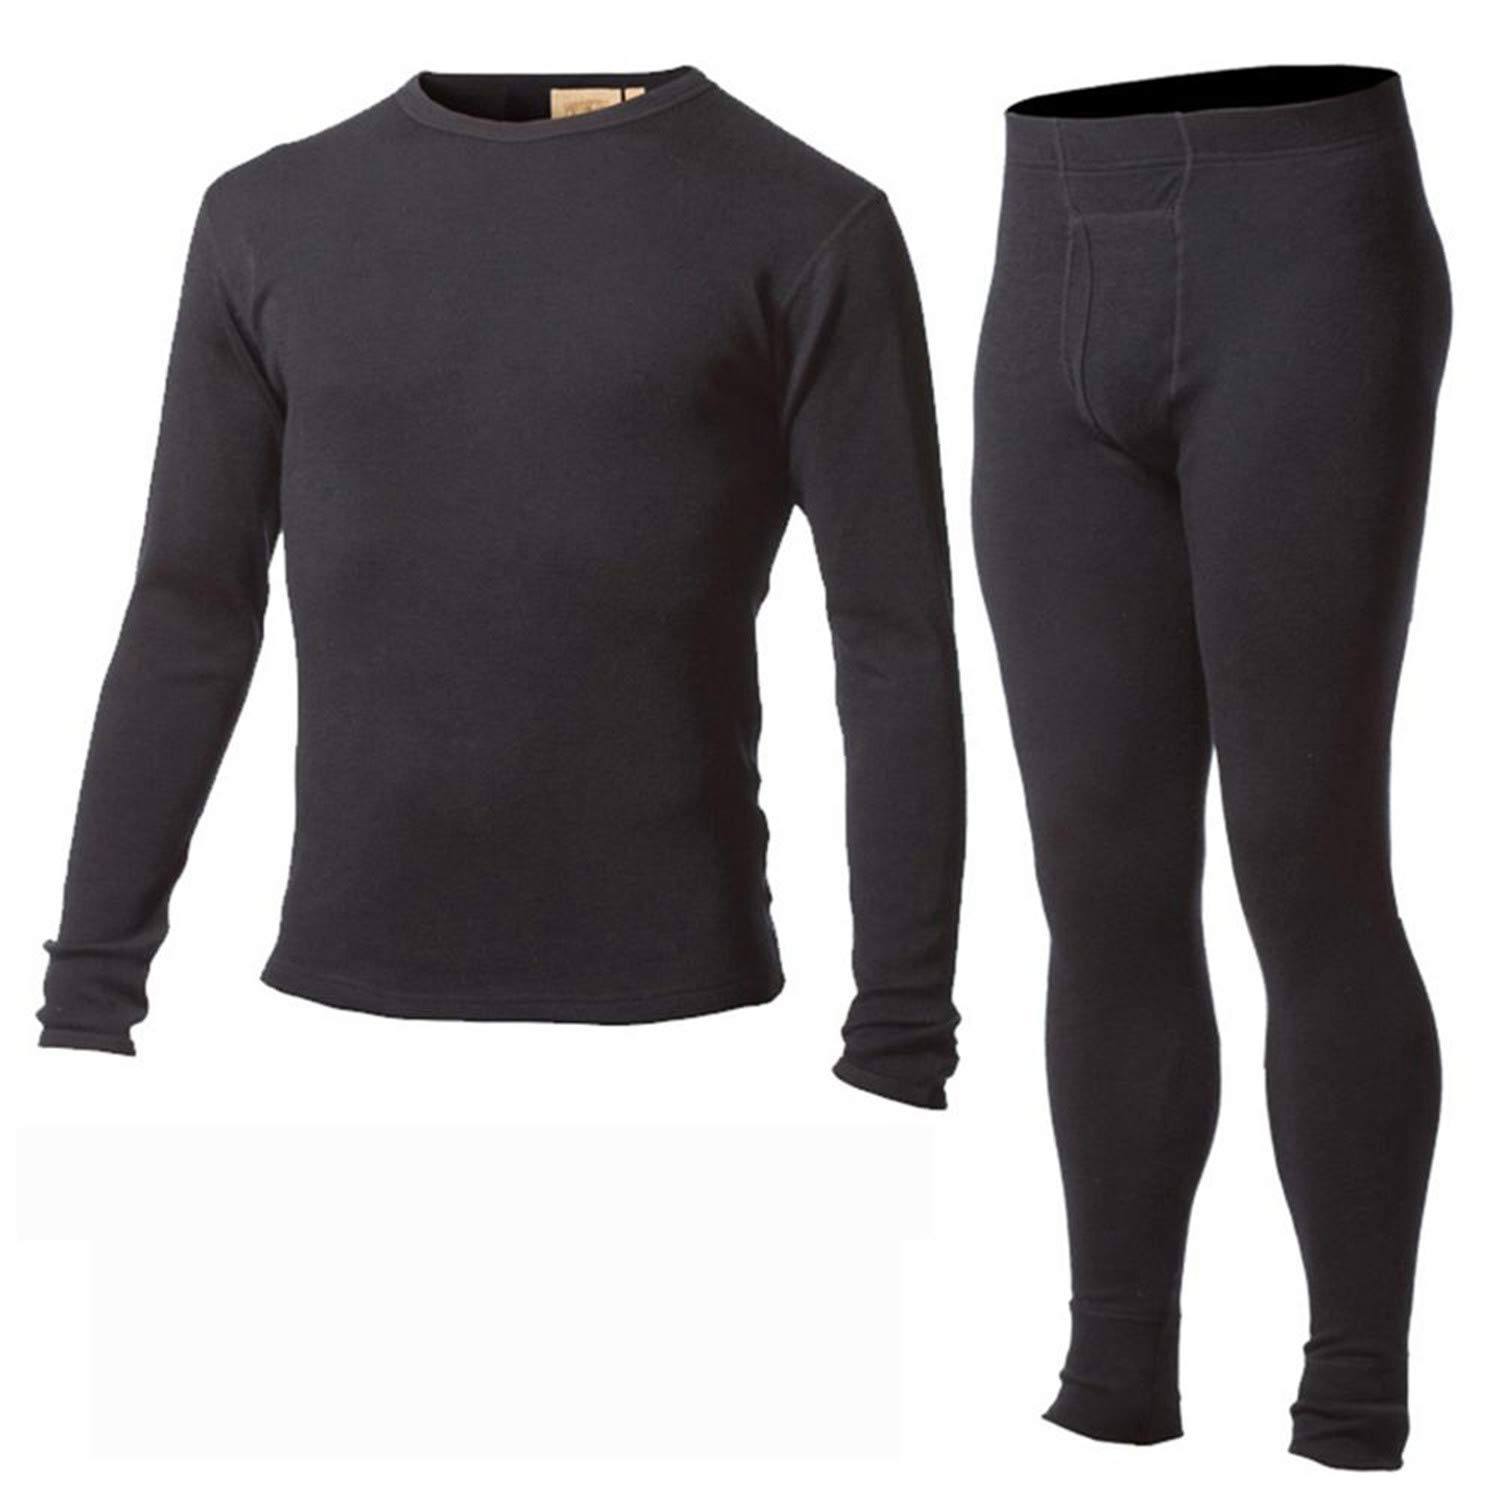 chiced Men's 100% Pure Merino Wool Winter Base Layer Thermal Warm Sweater Underwear